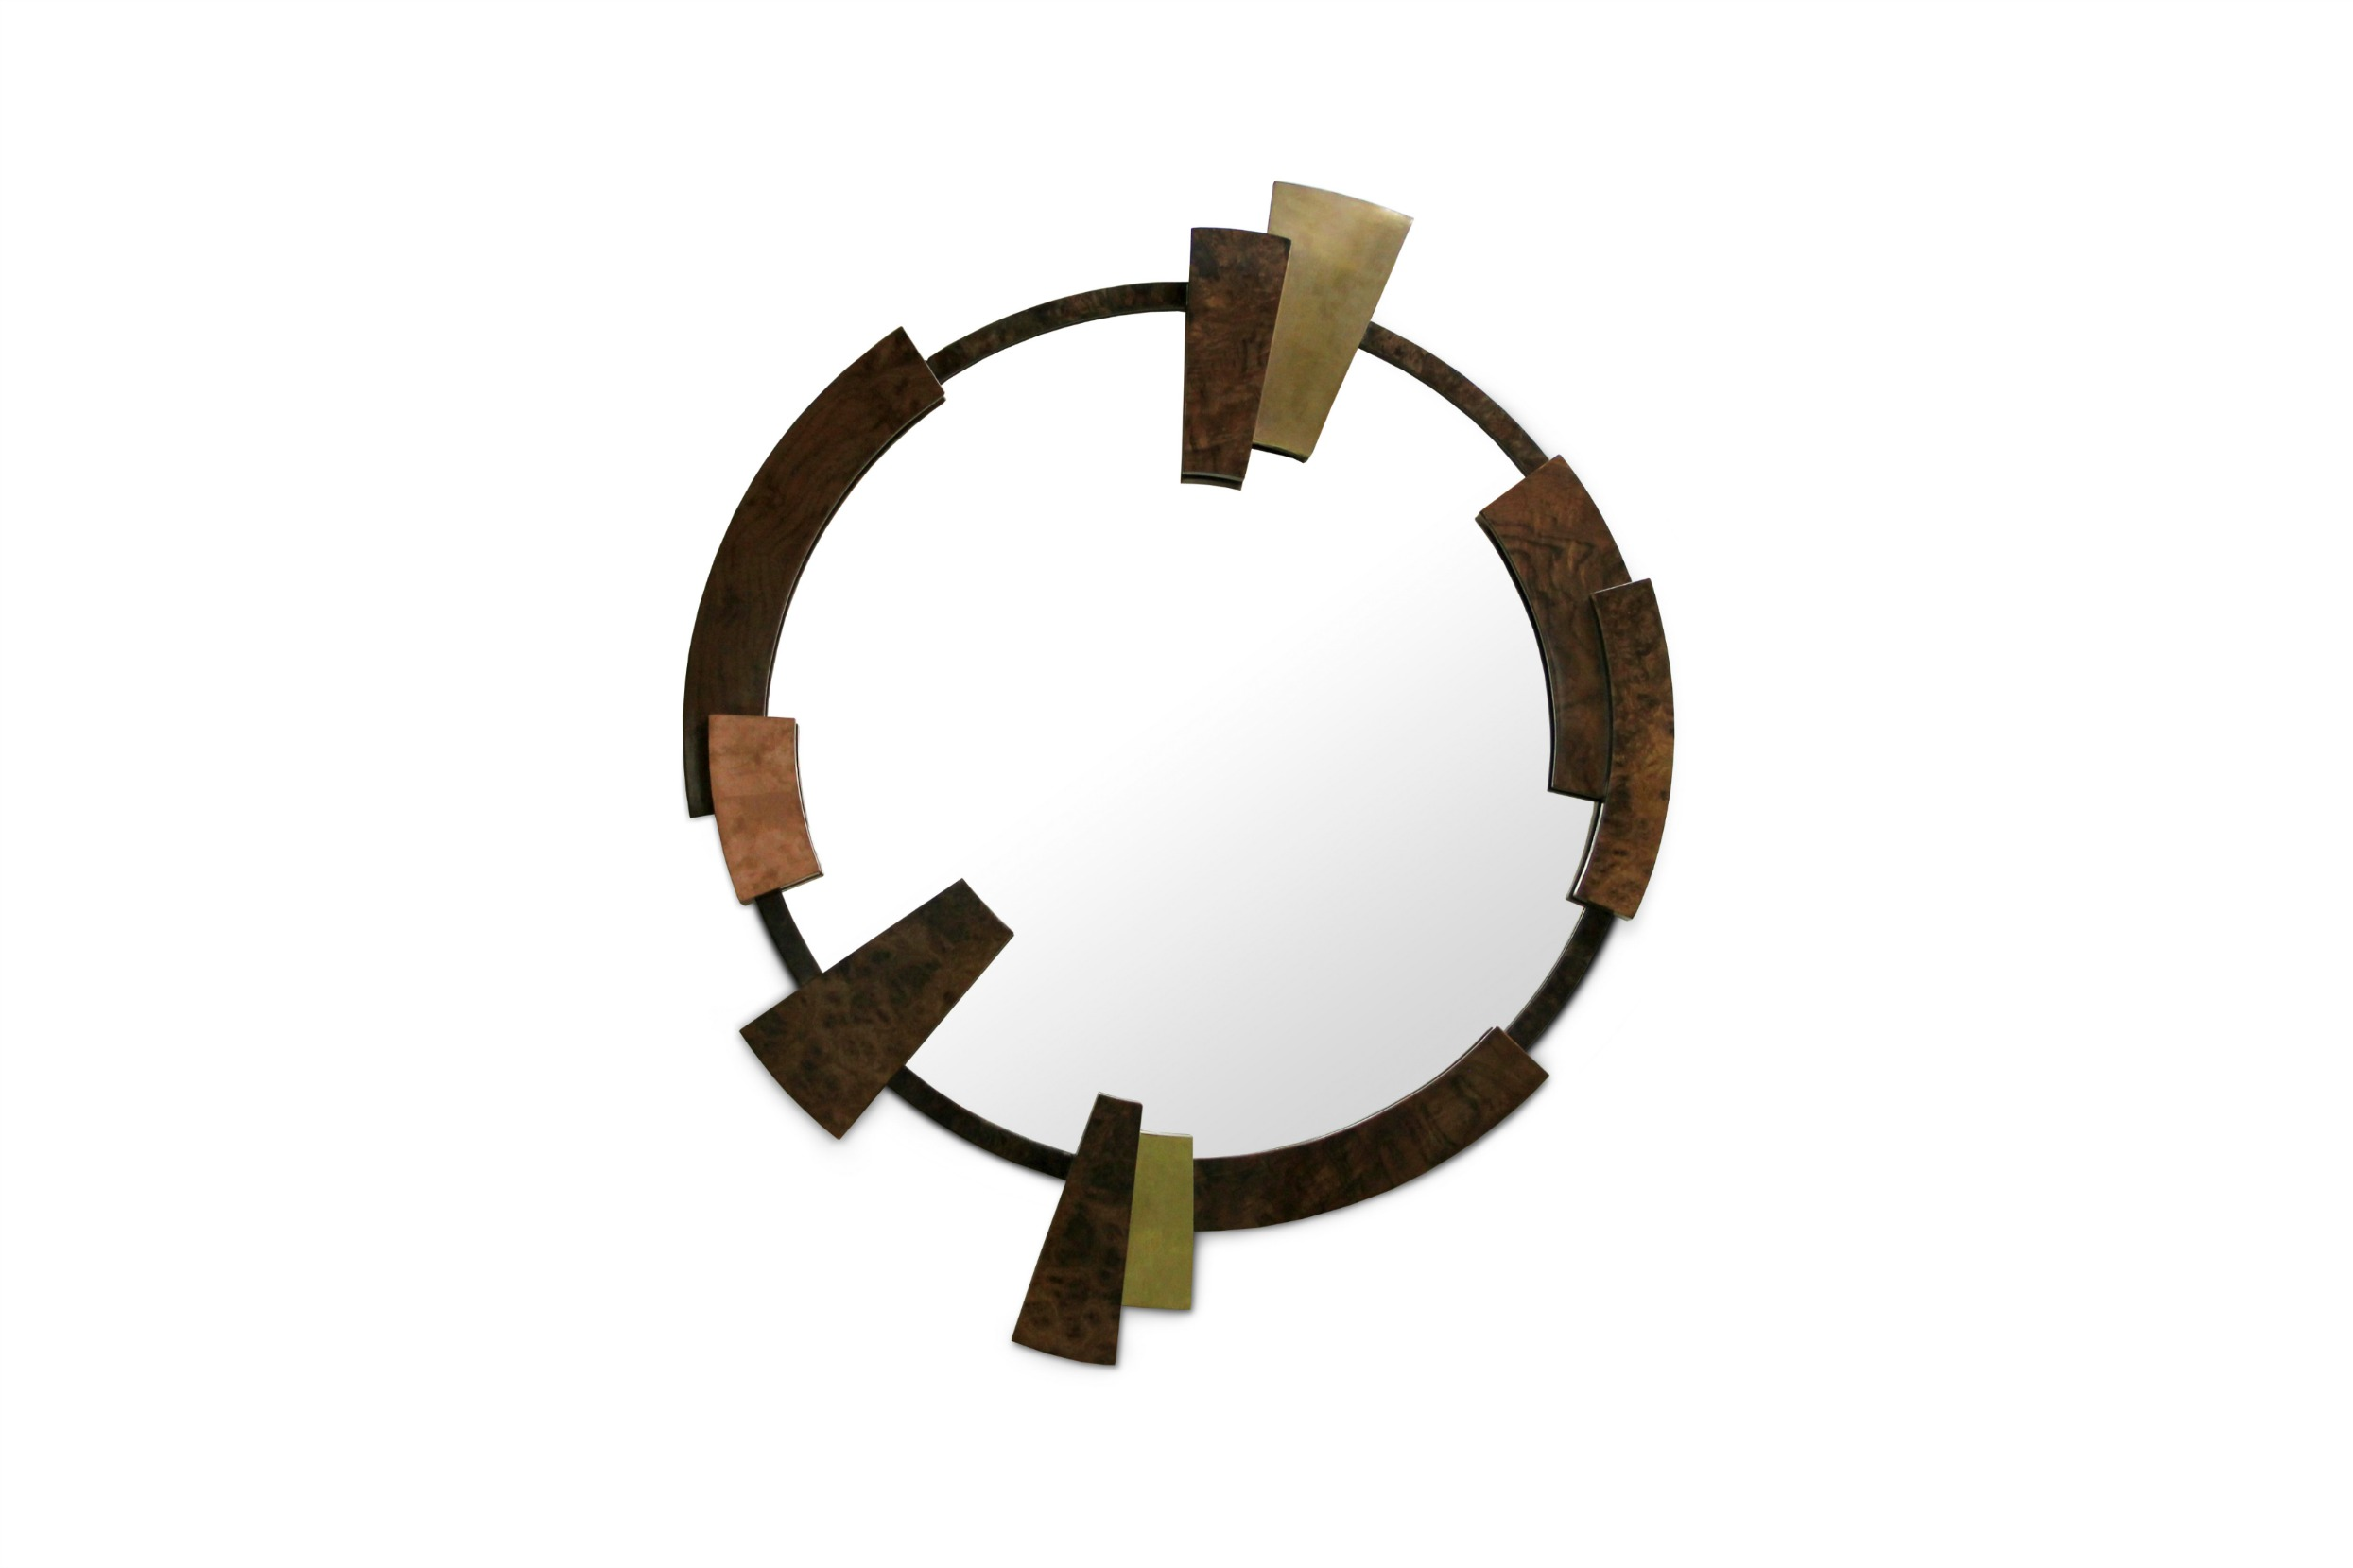 Round Mirrors: Find Out Extraordinary Pieces to Highlight your House round mirrorsRound Mirrors: Find Out Extraordinary Pieces to Highlight your Housekaamos mirror 1 HR